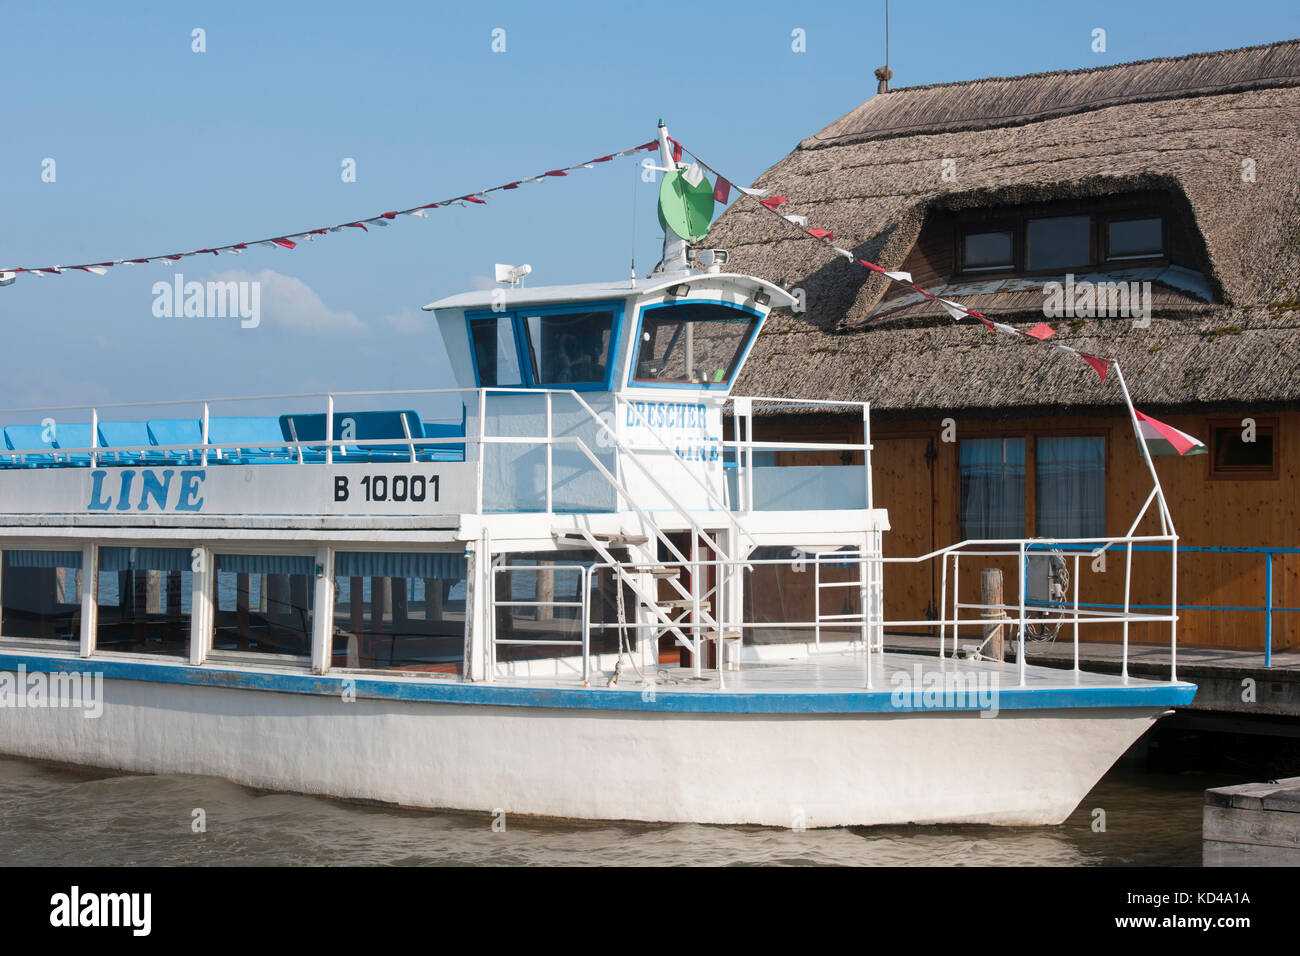 Reetdacher Stock Photos Reetdacher Stock Images Alamy